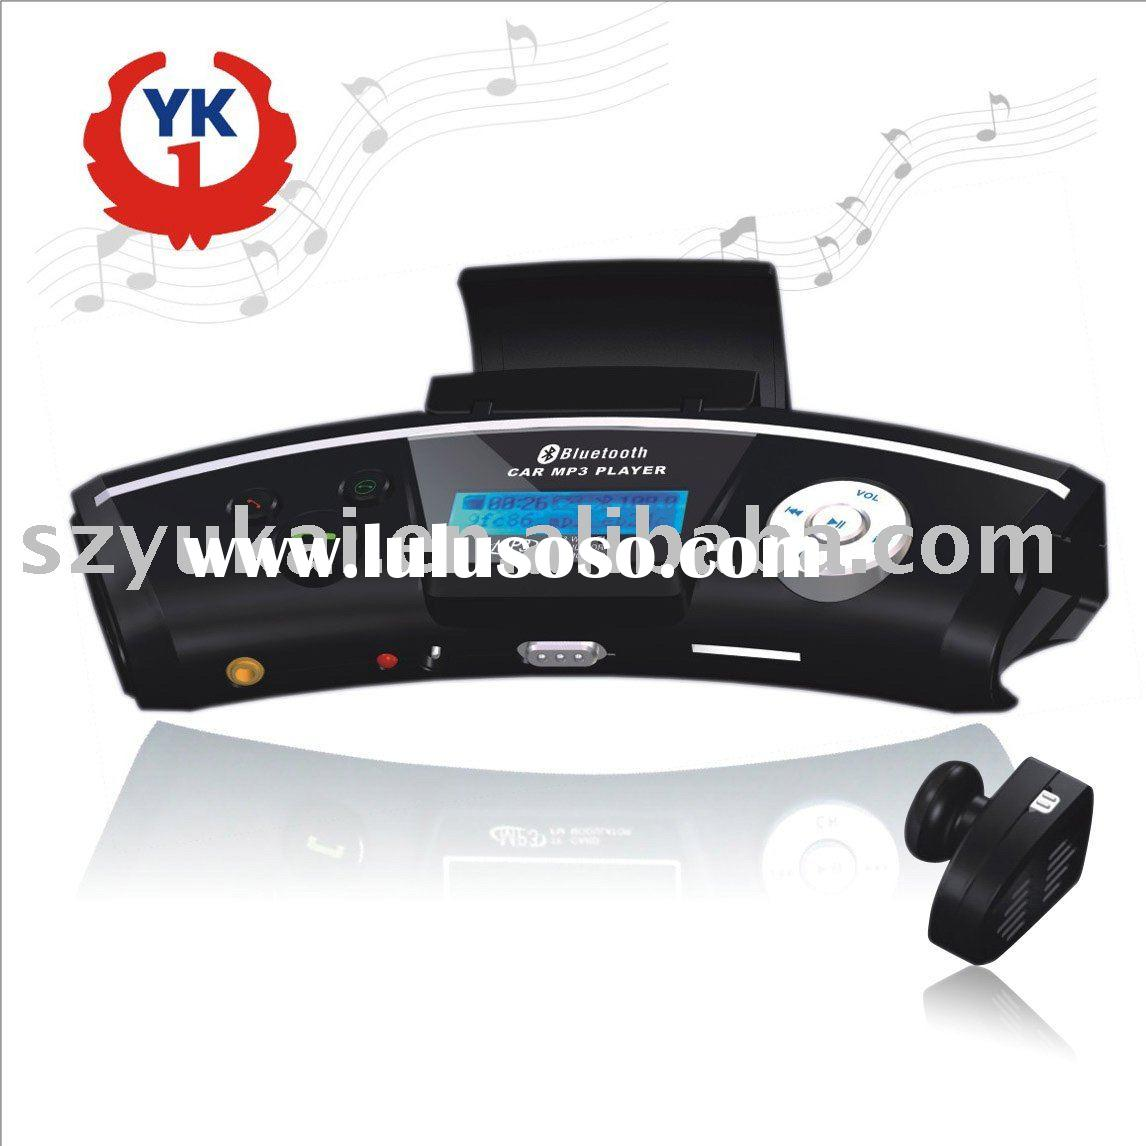 bluetooth hands free car kit built-in speaker and recharge battery YK-168D-10